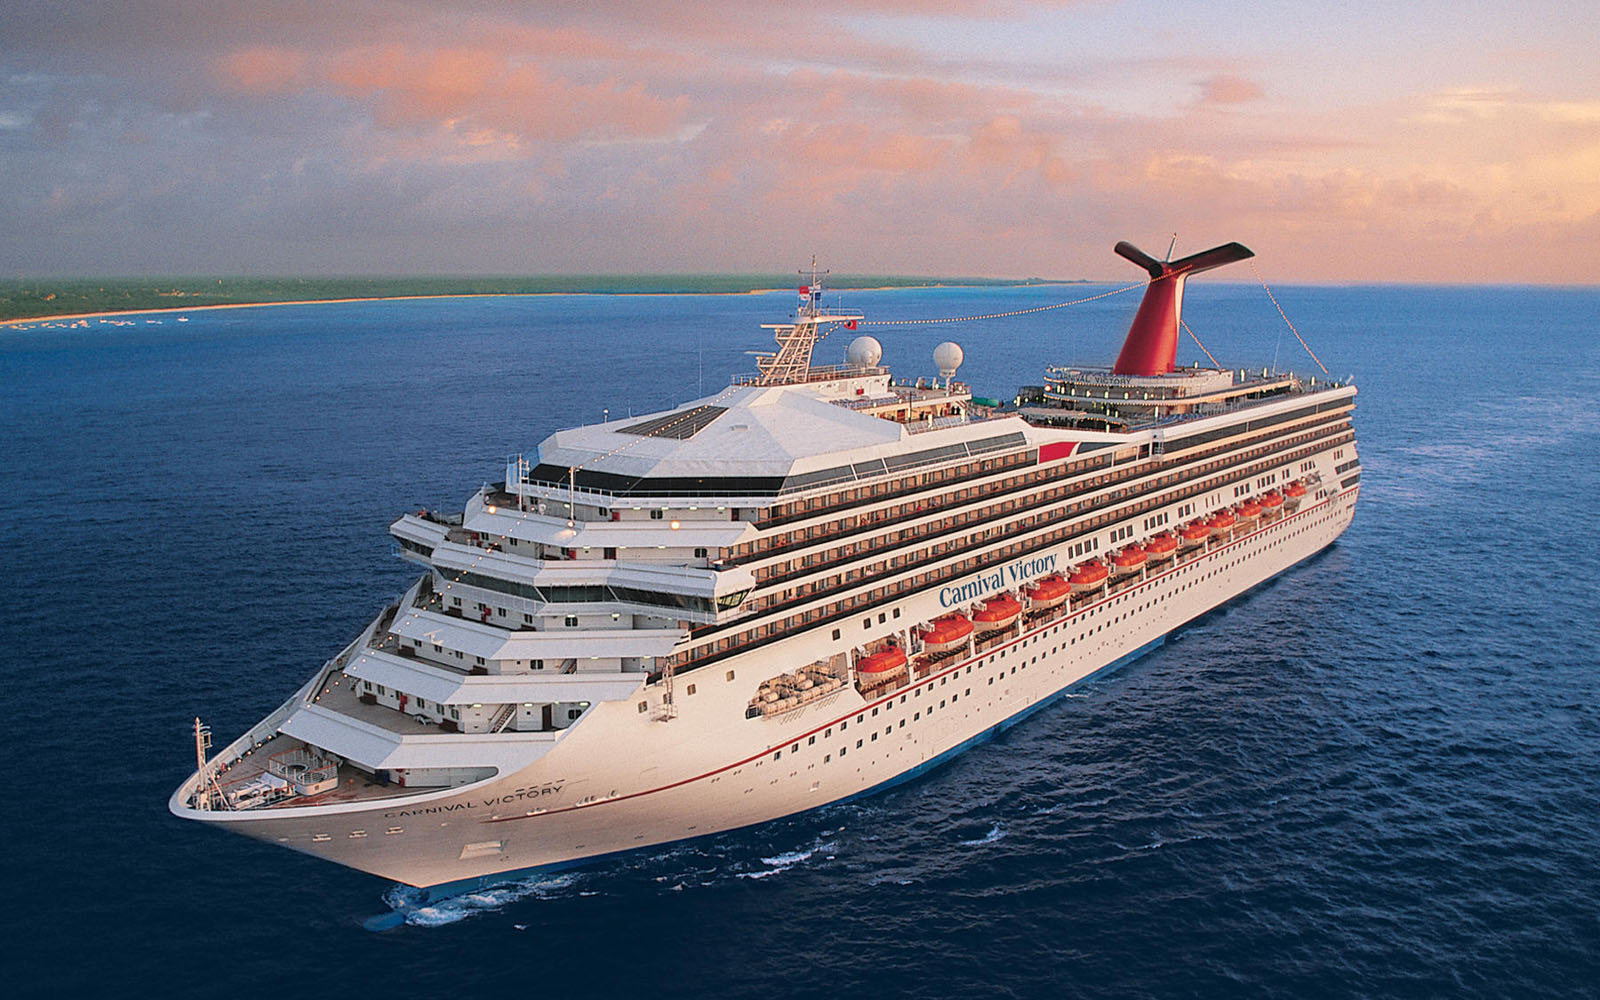 Carnival Victory Cruise Ship 210.94 Kb